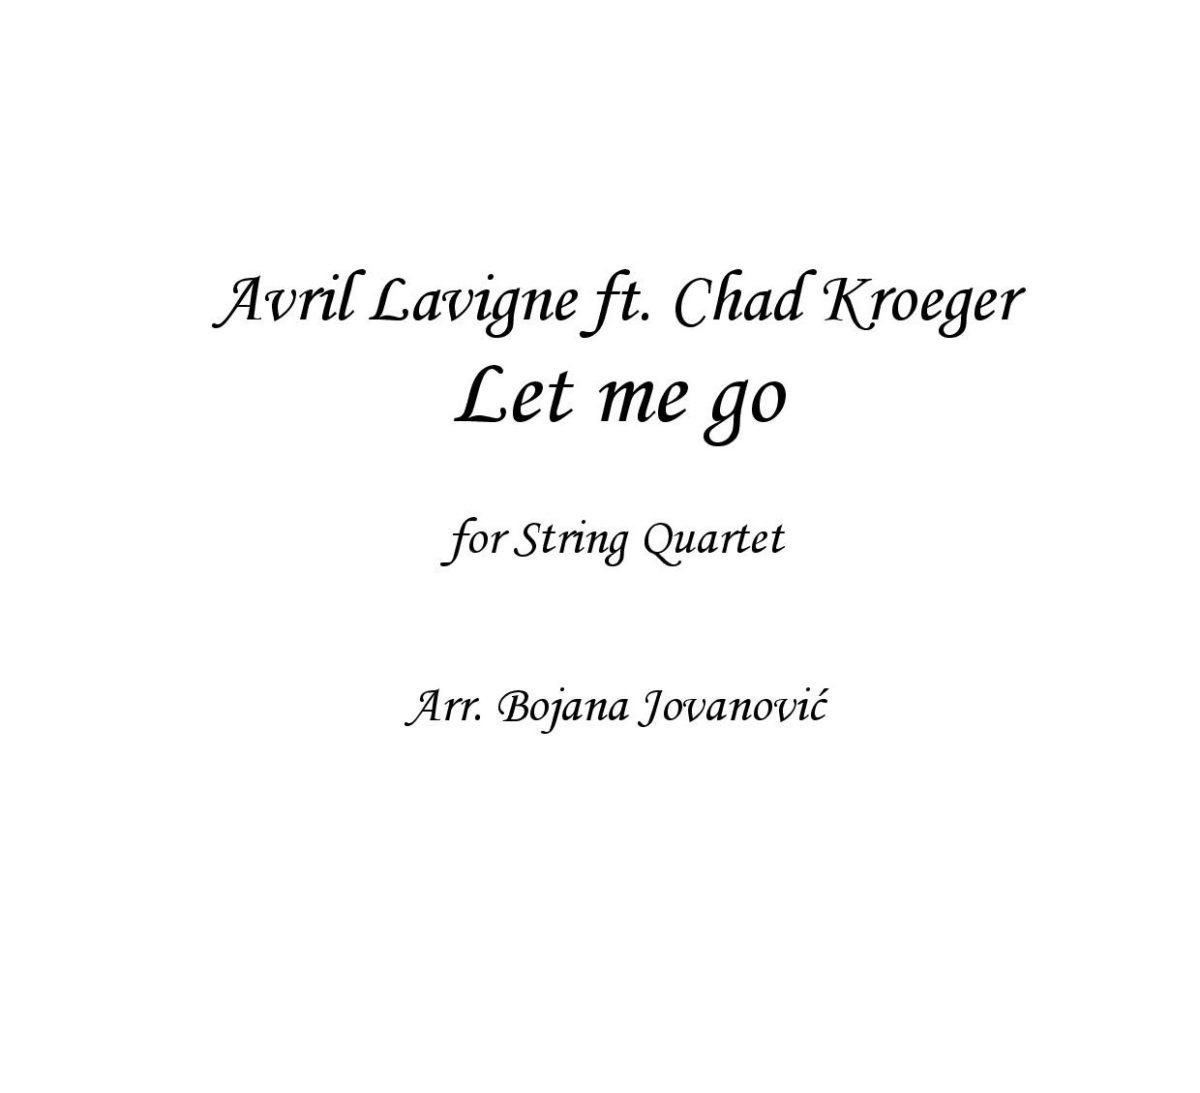 Let me go (Avril Lavigne ft Chad Kroeger) - Sheet Music